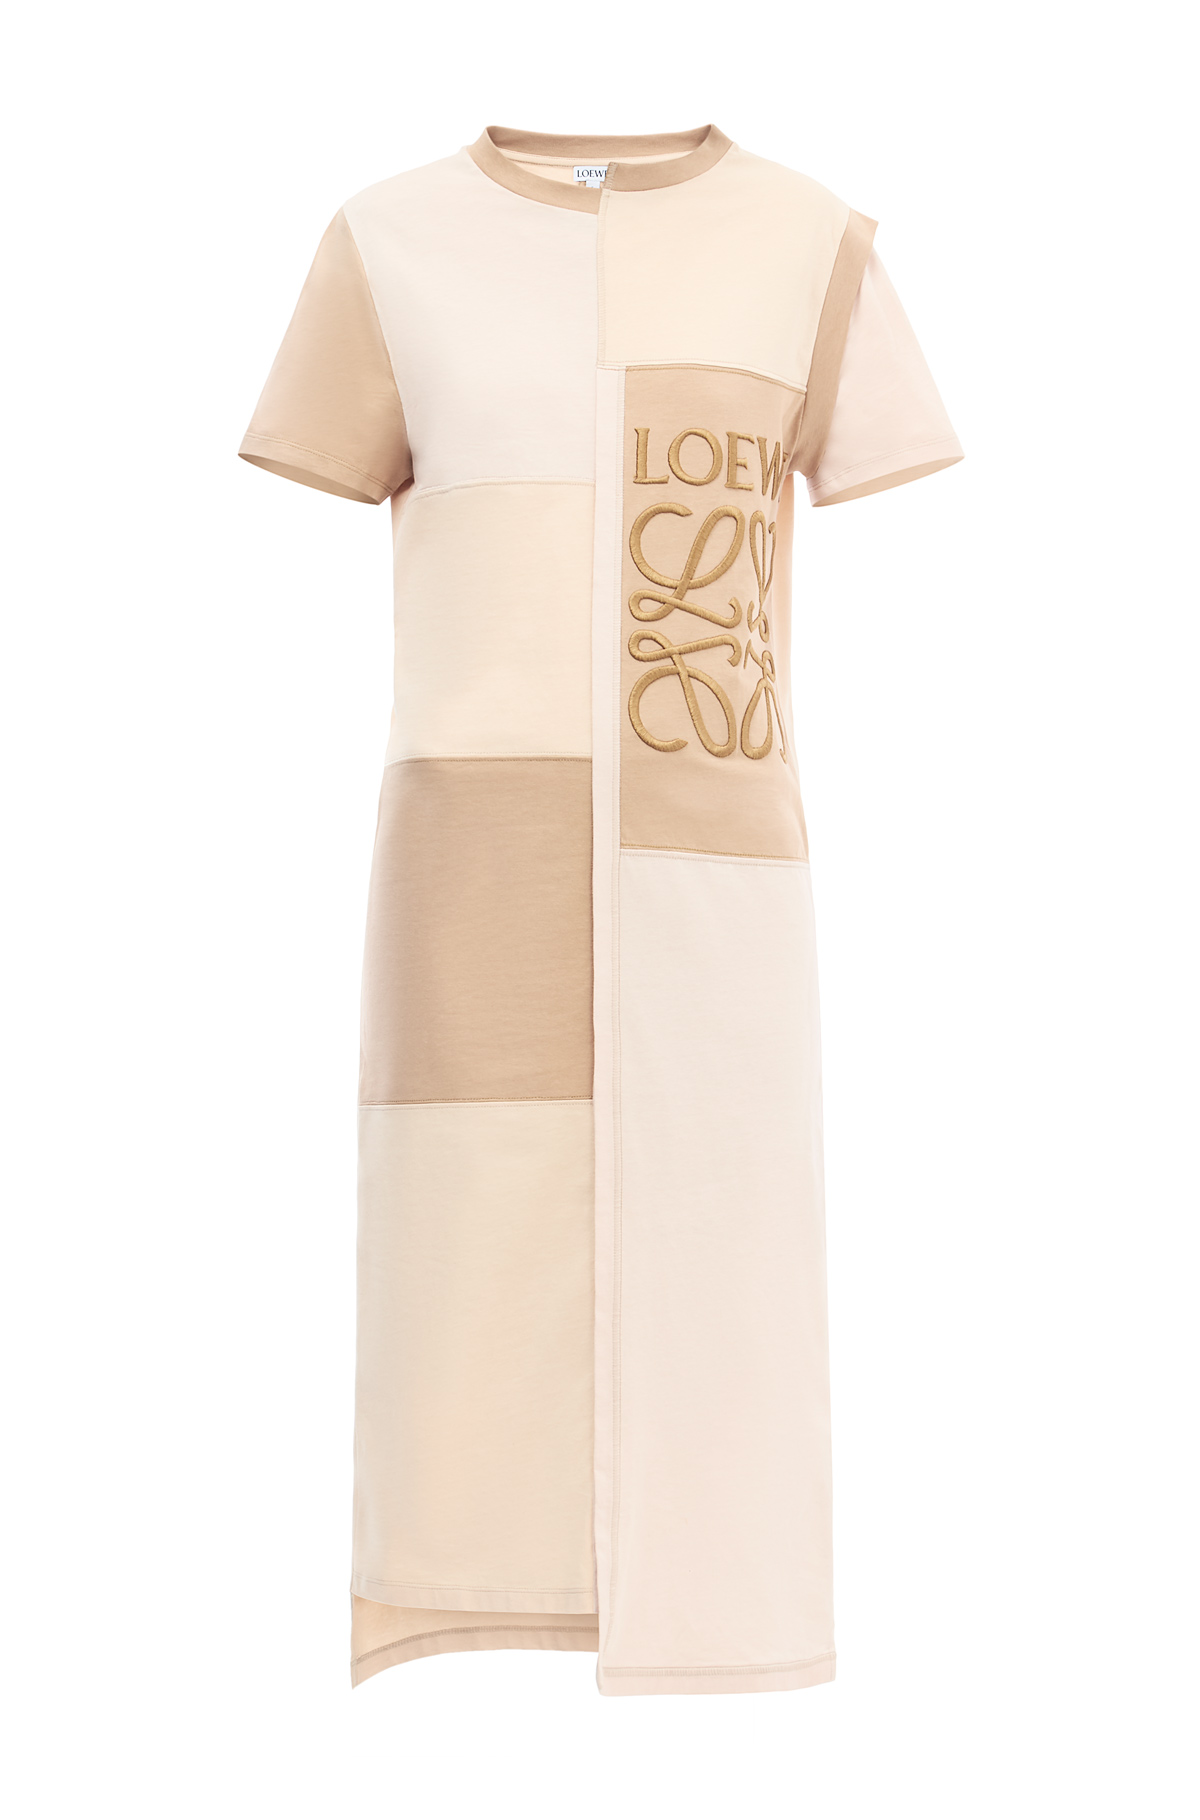 LOEWE Patchwork T-Shirt Dress Beige front